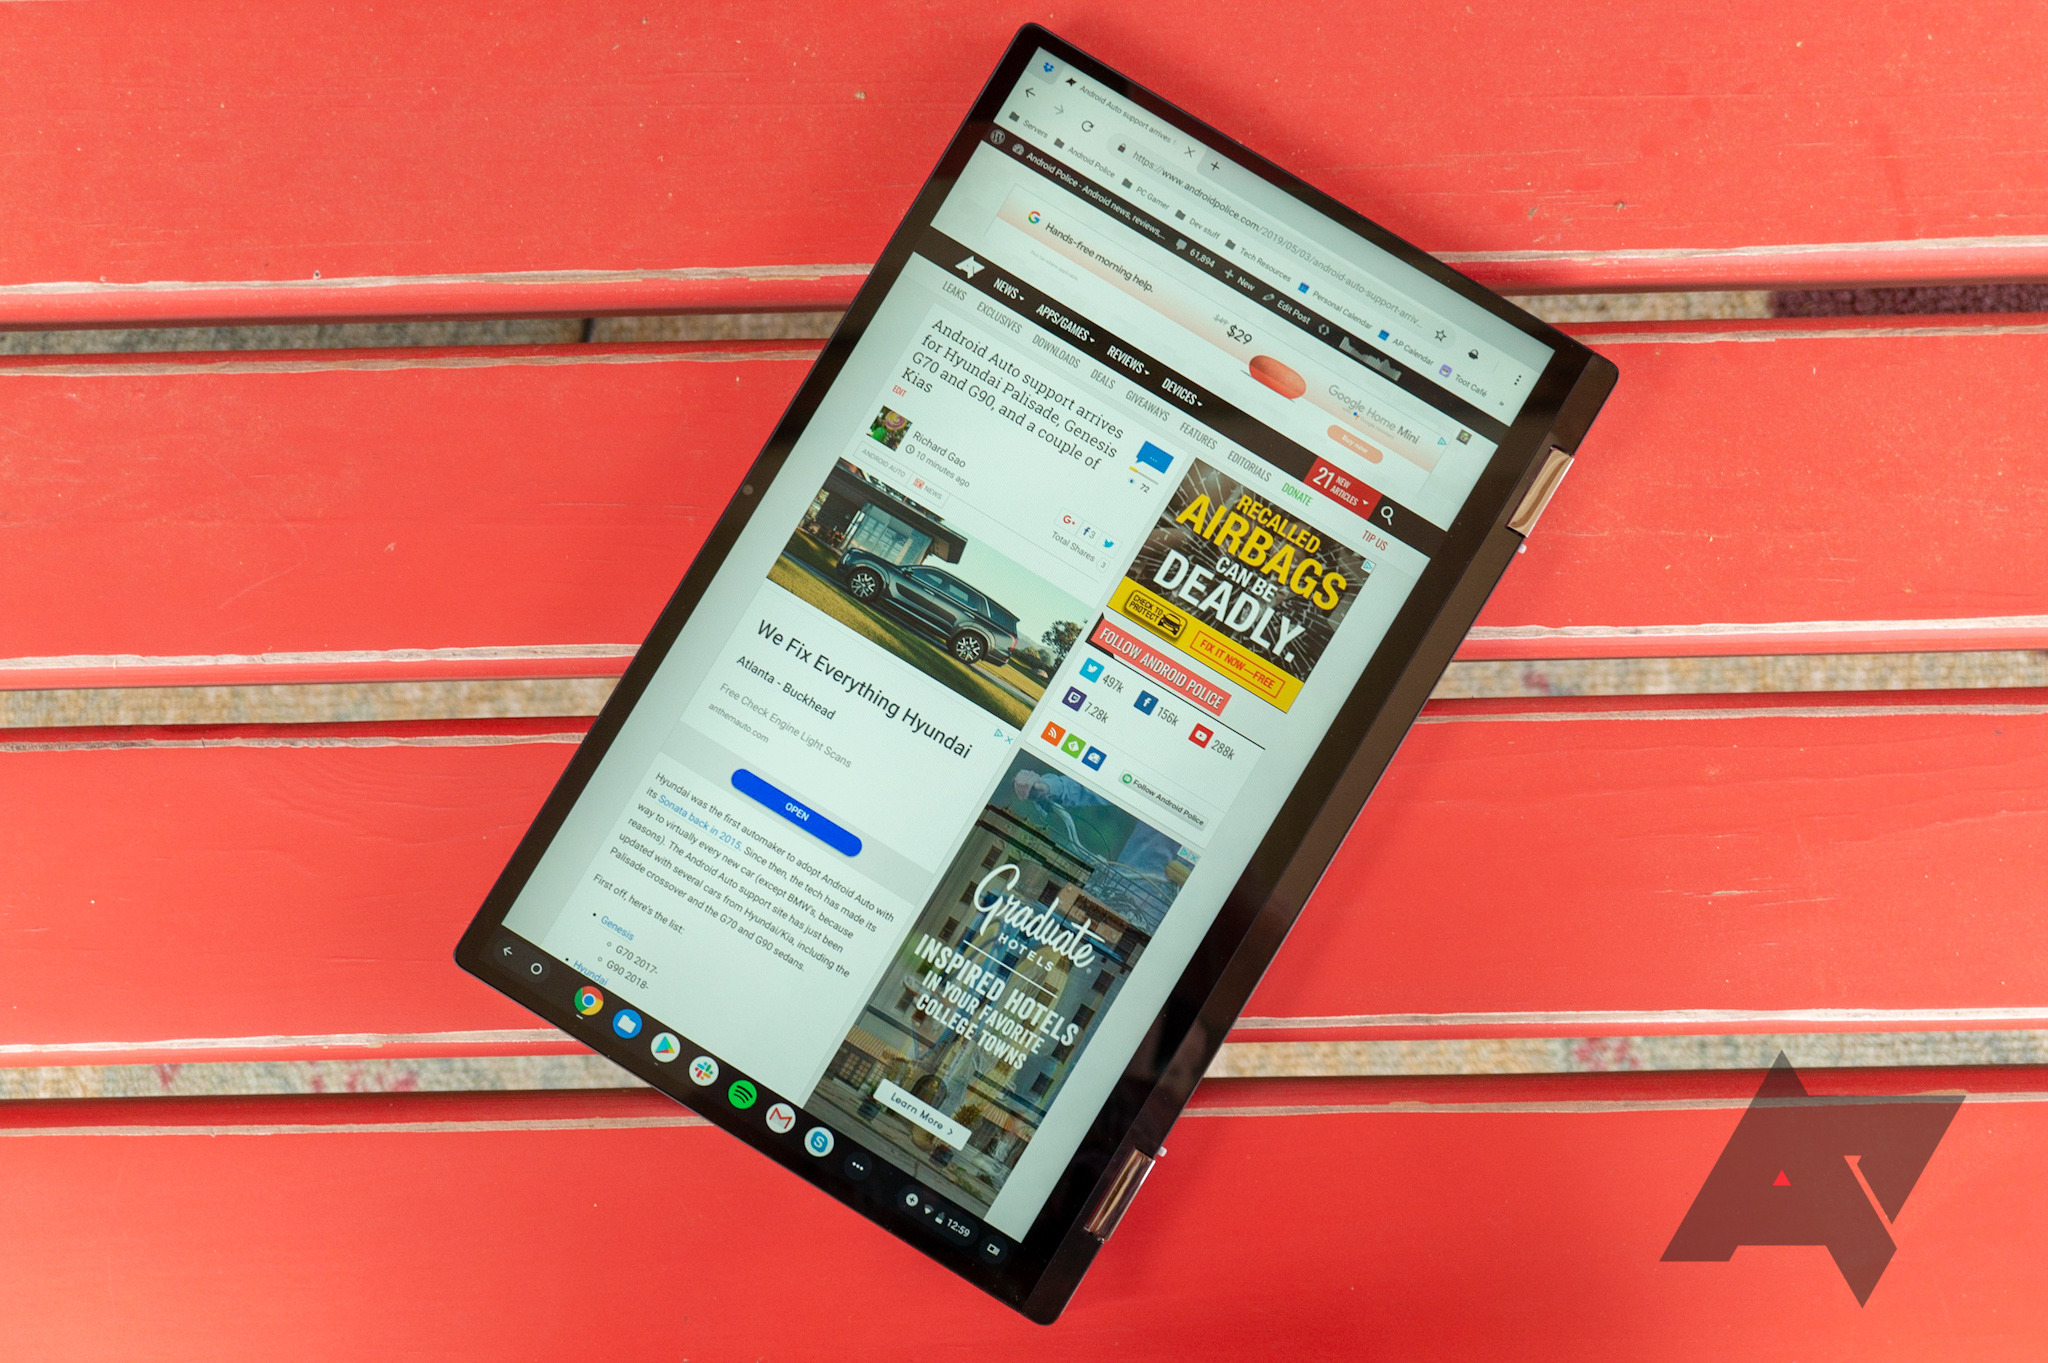 Chrome Os 75 Improves Linux Apps Brings Android Cloud Storage To Files App And More